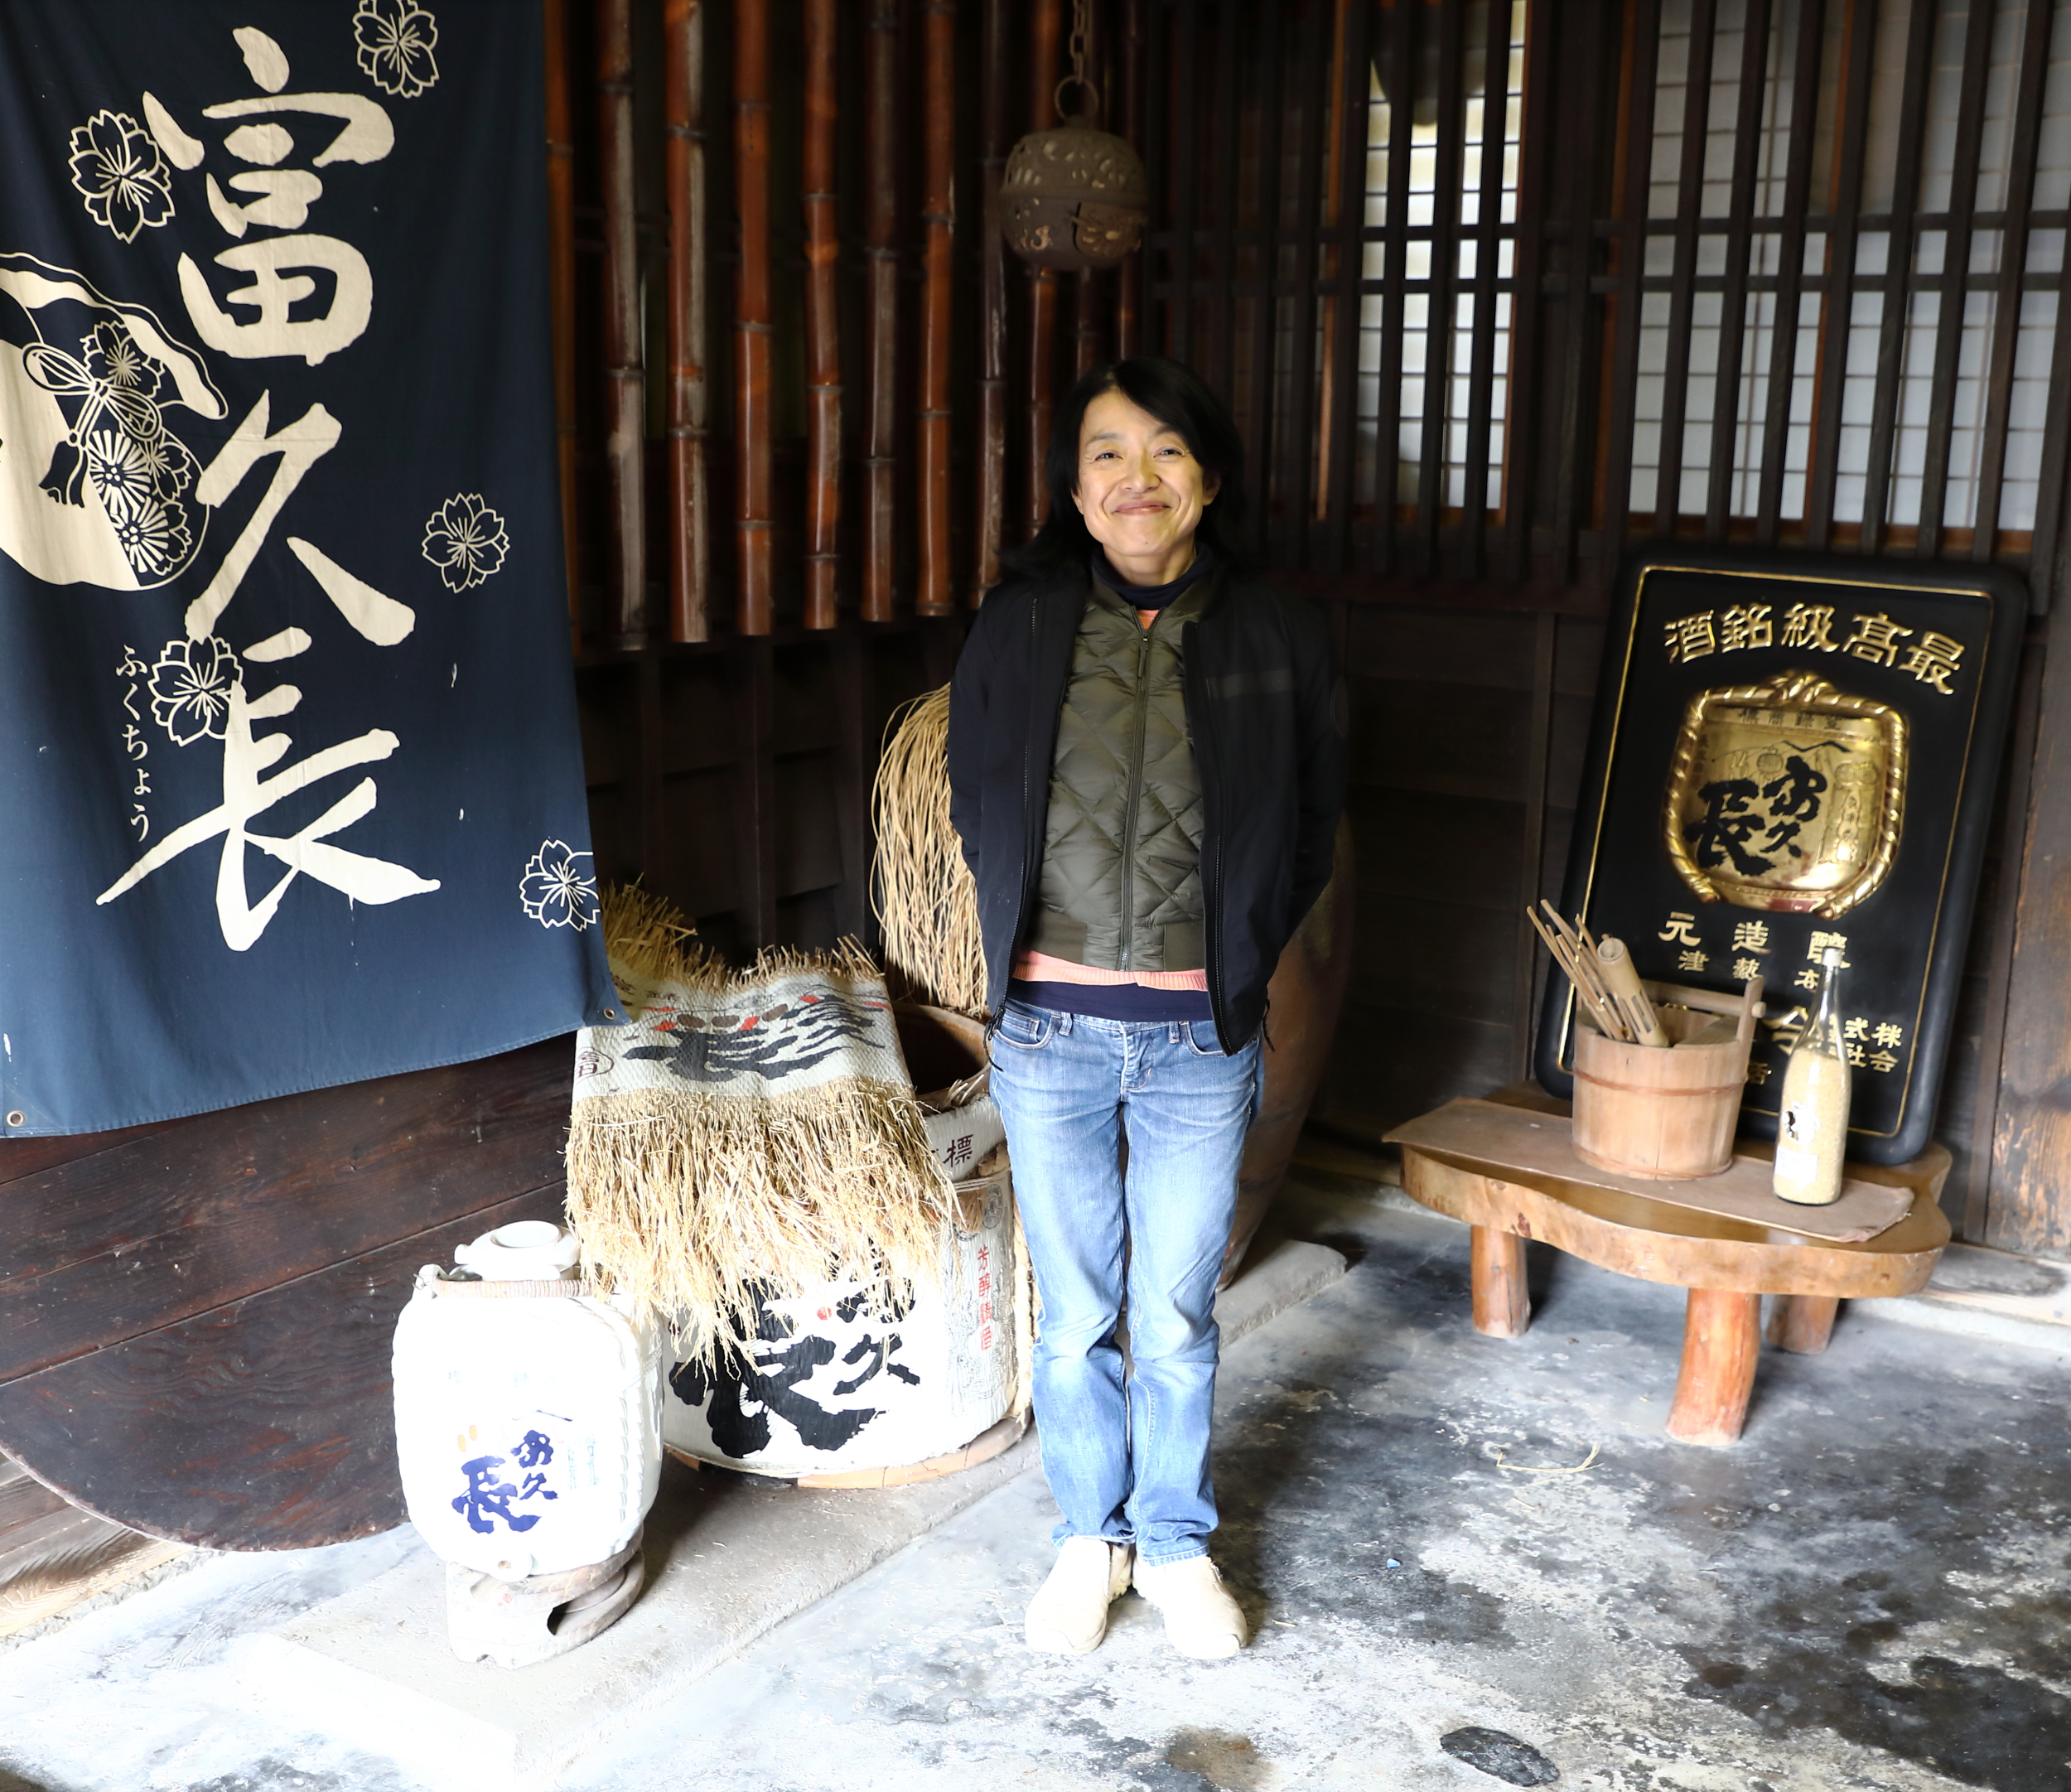 """Miho Imada inside the formal entrance to the sake brewery. The blue cloth banner hanging to her left is printed with her sake's brand name and logo of """"Fukucho,"""" which means """"Forever Fortune."""""""